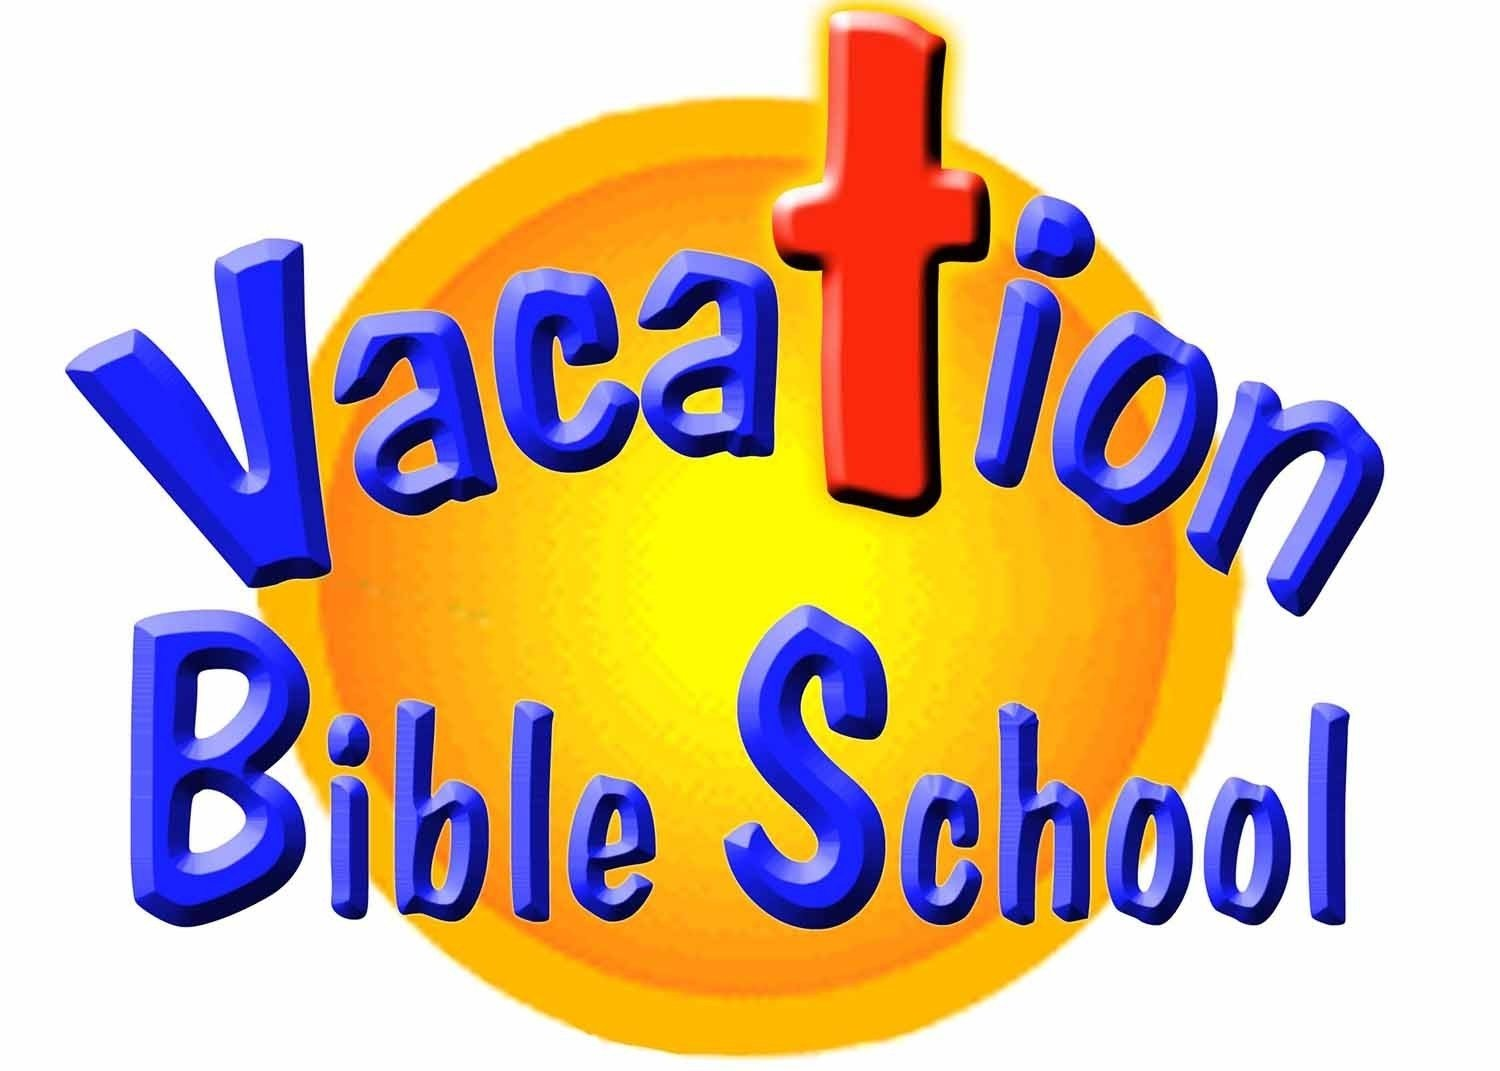 newport beach local news on faith: vacation bible school - newport